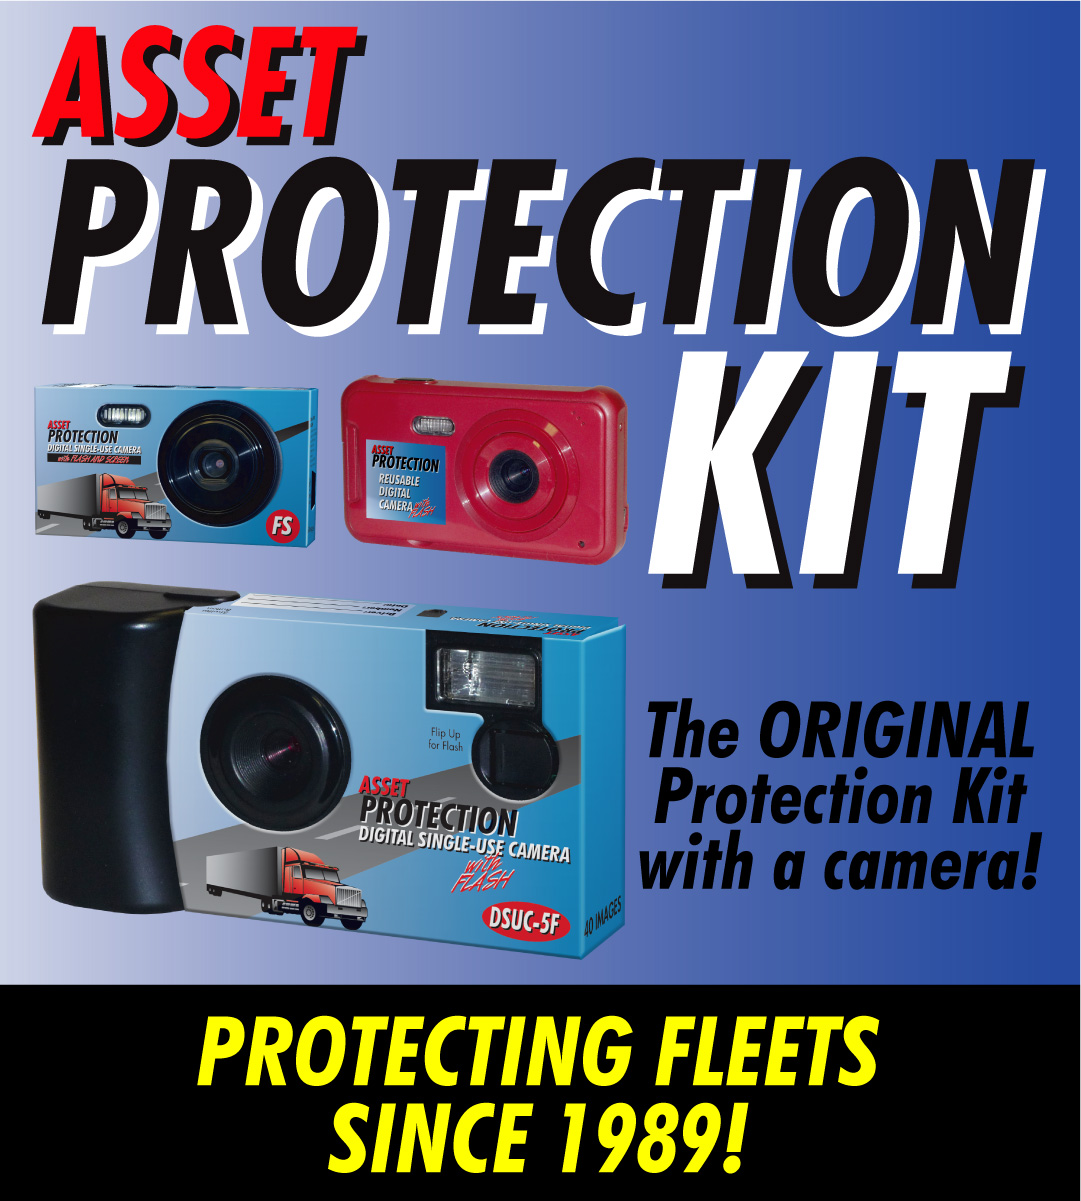 Asset Protection Kit